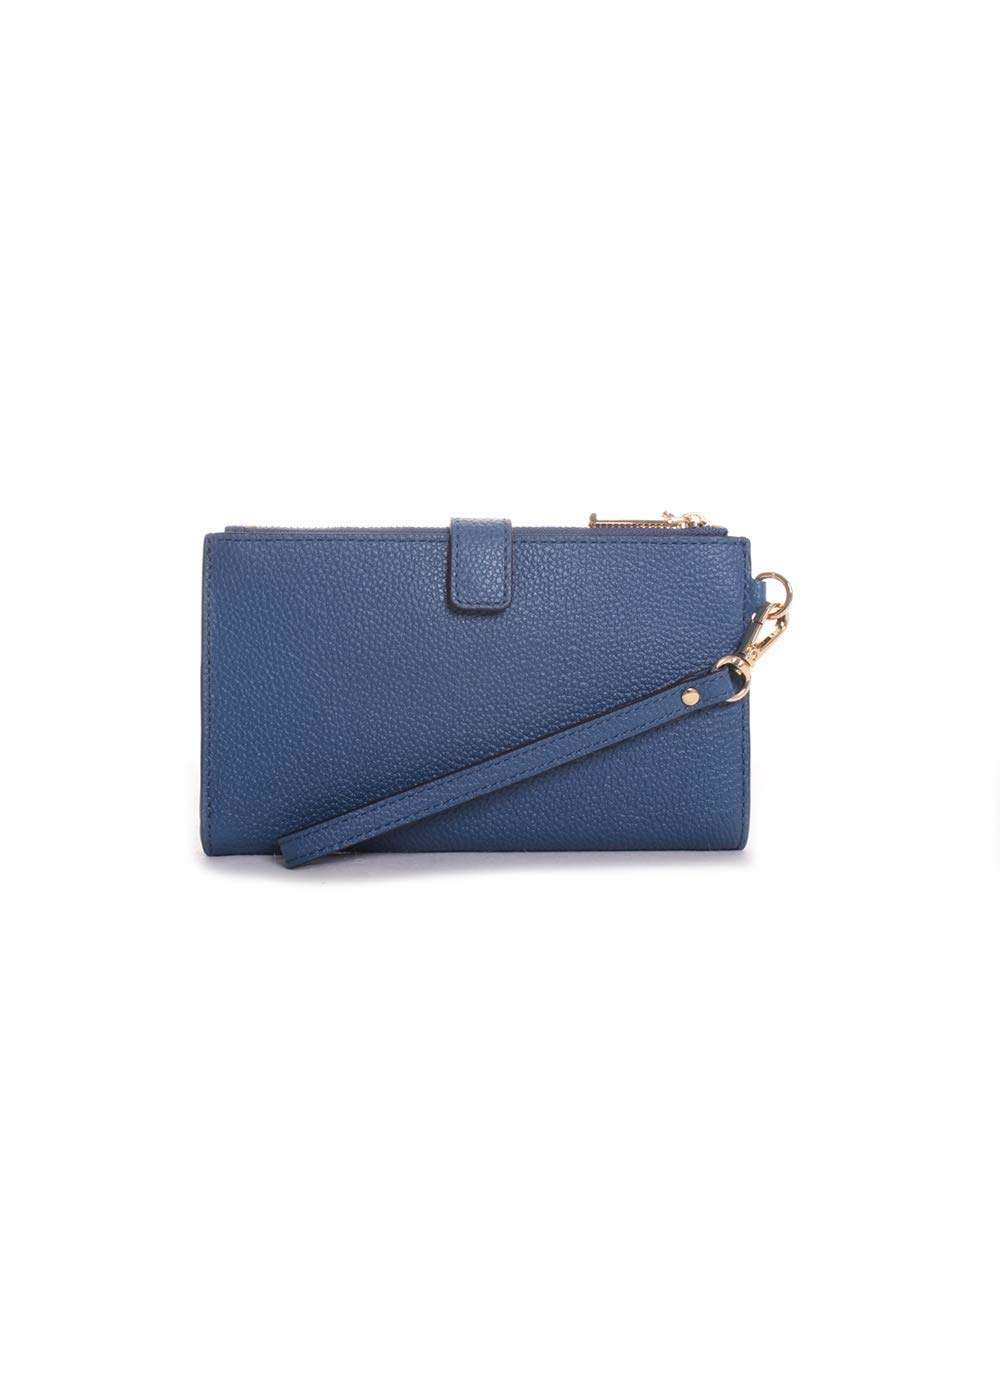 Michael Kors Double Zip Leather Wristlet in Dark Chambray by Michael Kors (Image #3)